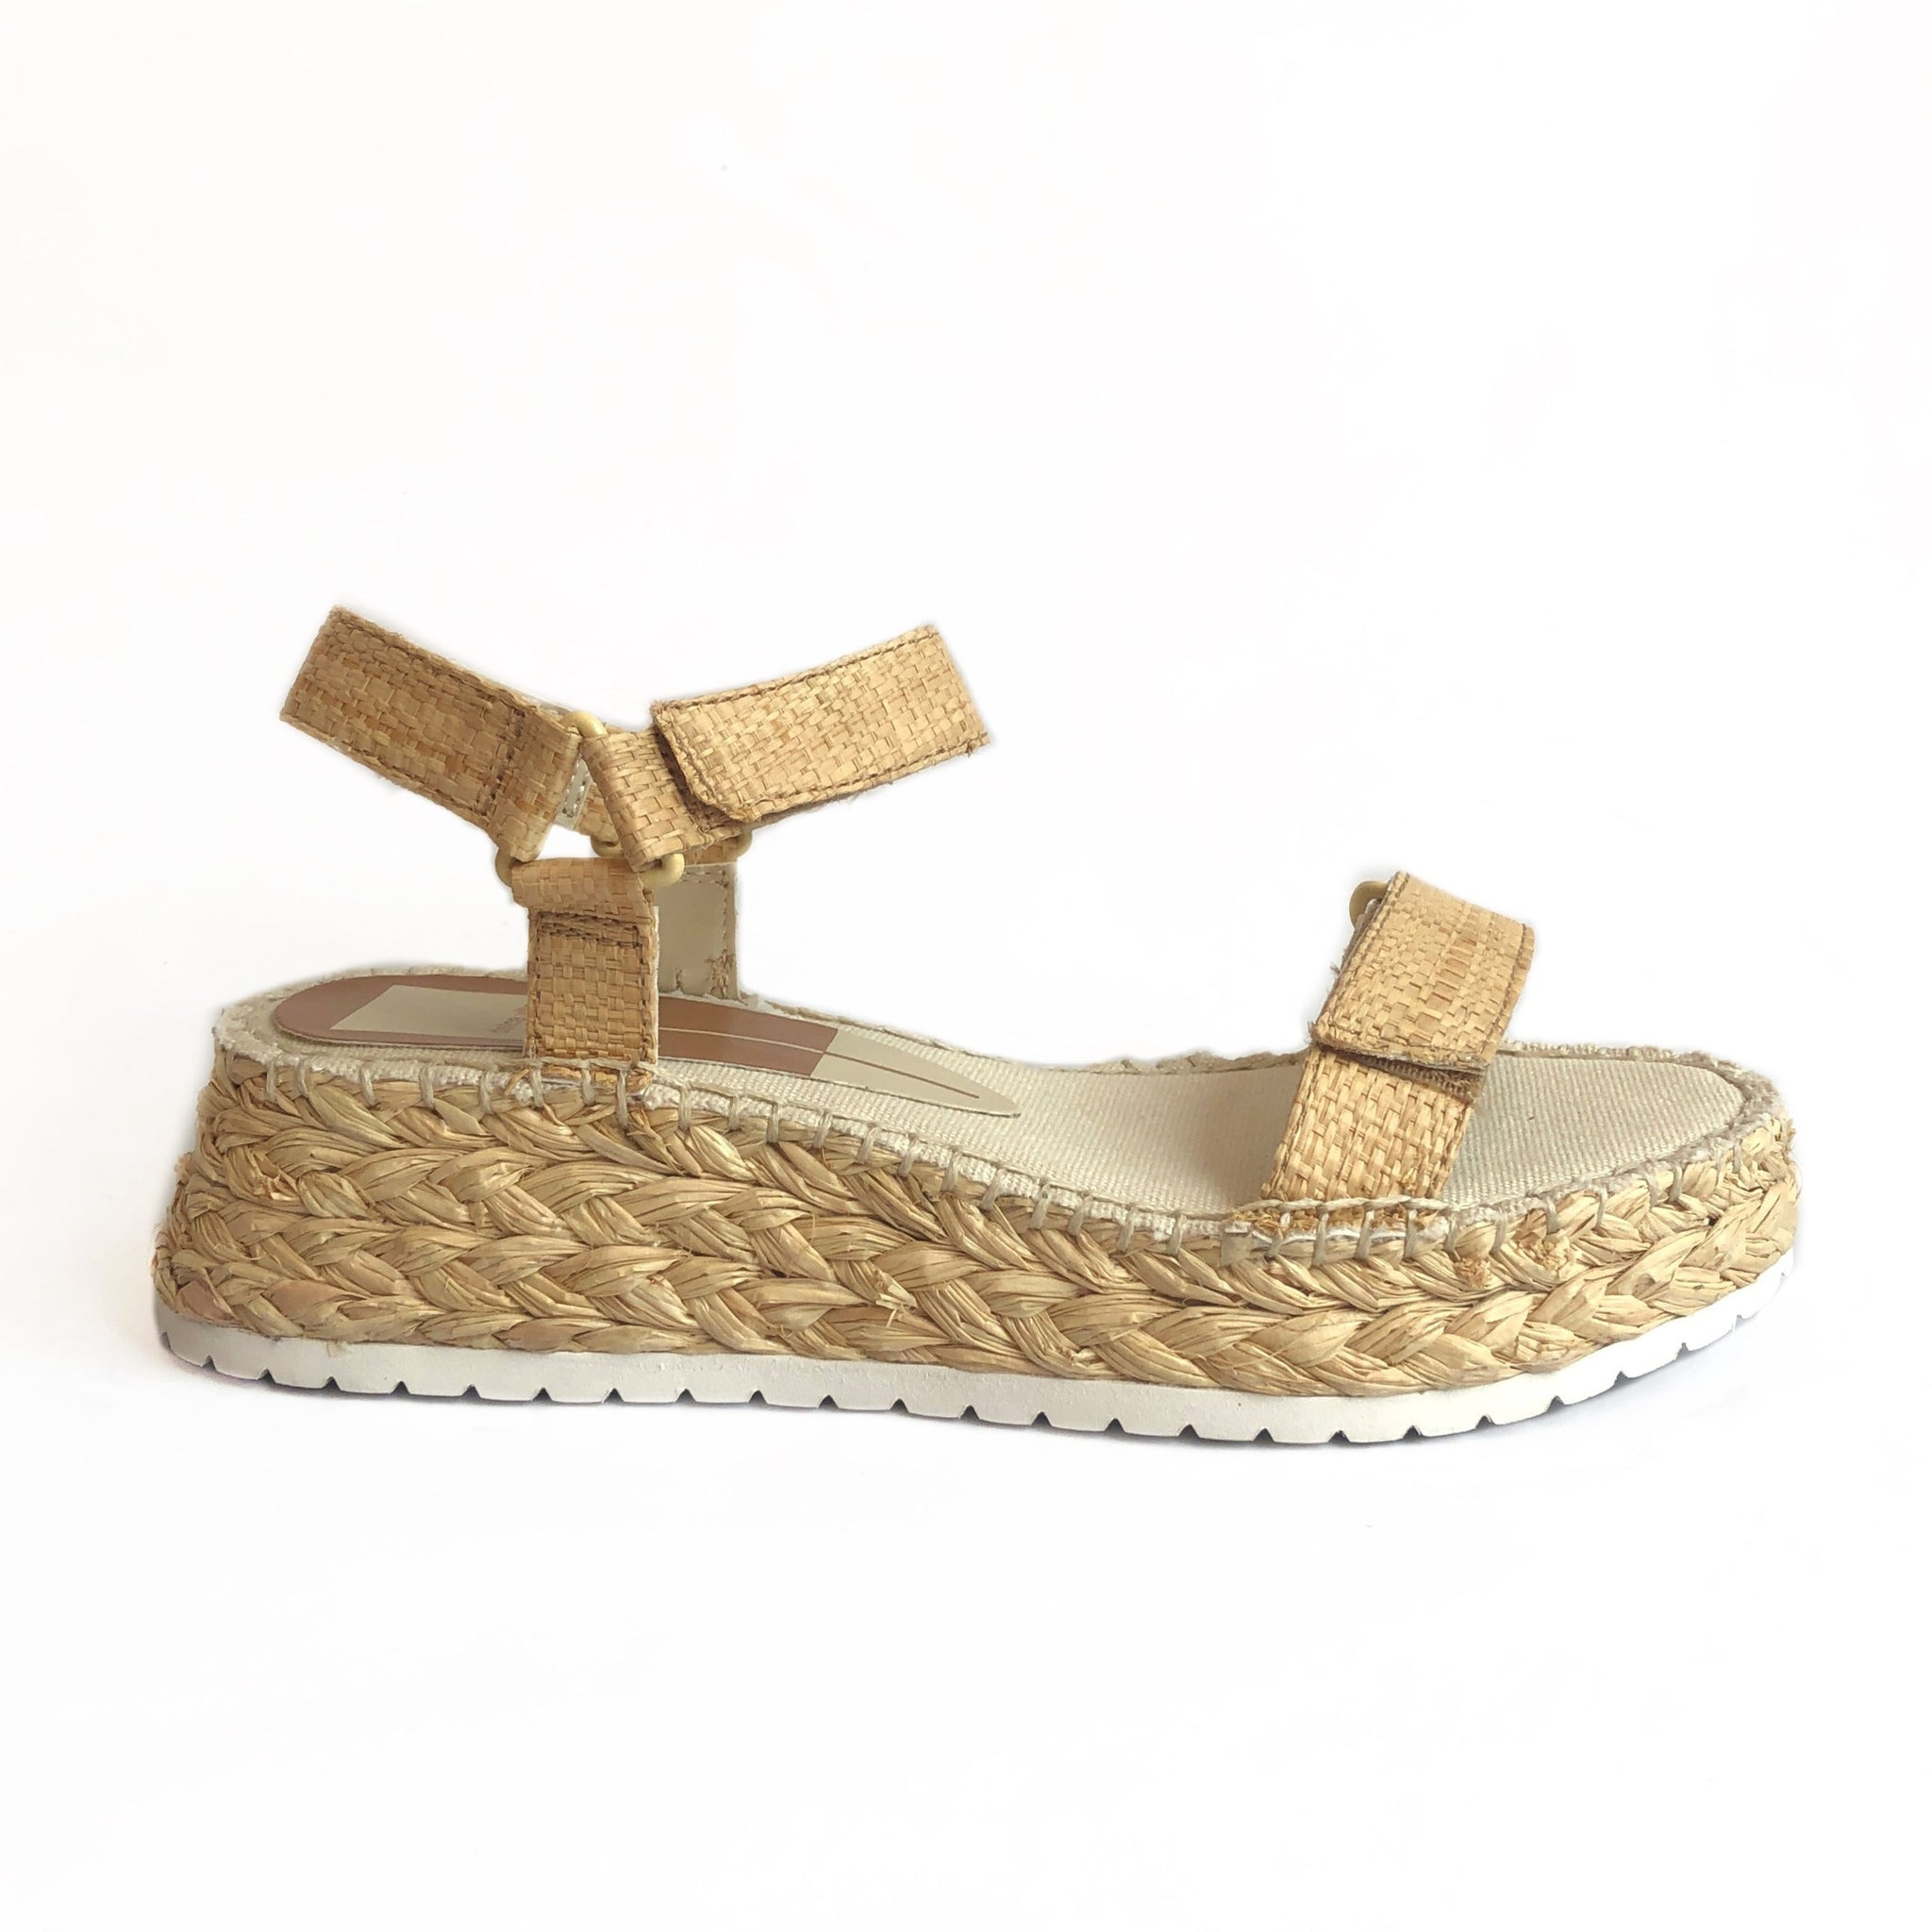 DOLCE VITA - MYRA IN LT. NATURAL RAFFIA